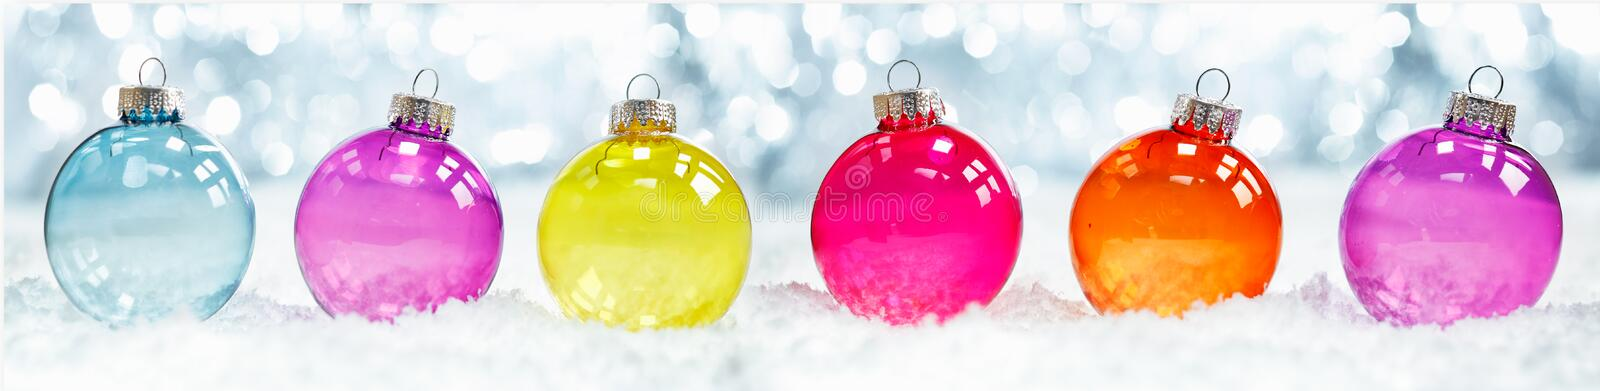 Baubles translúcidos coloridos do Natal imagem de stock royalty free